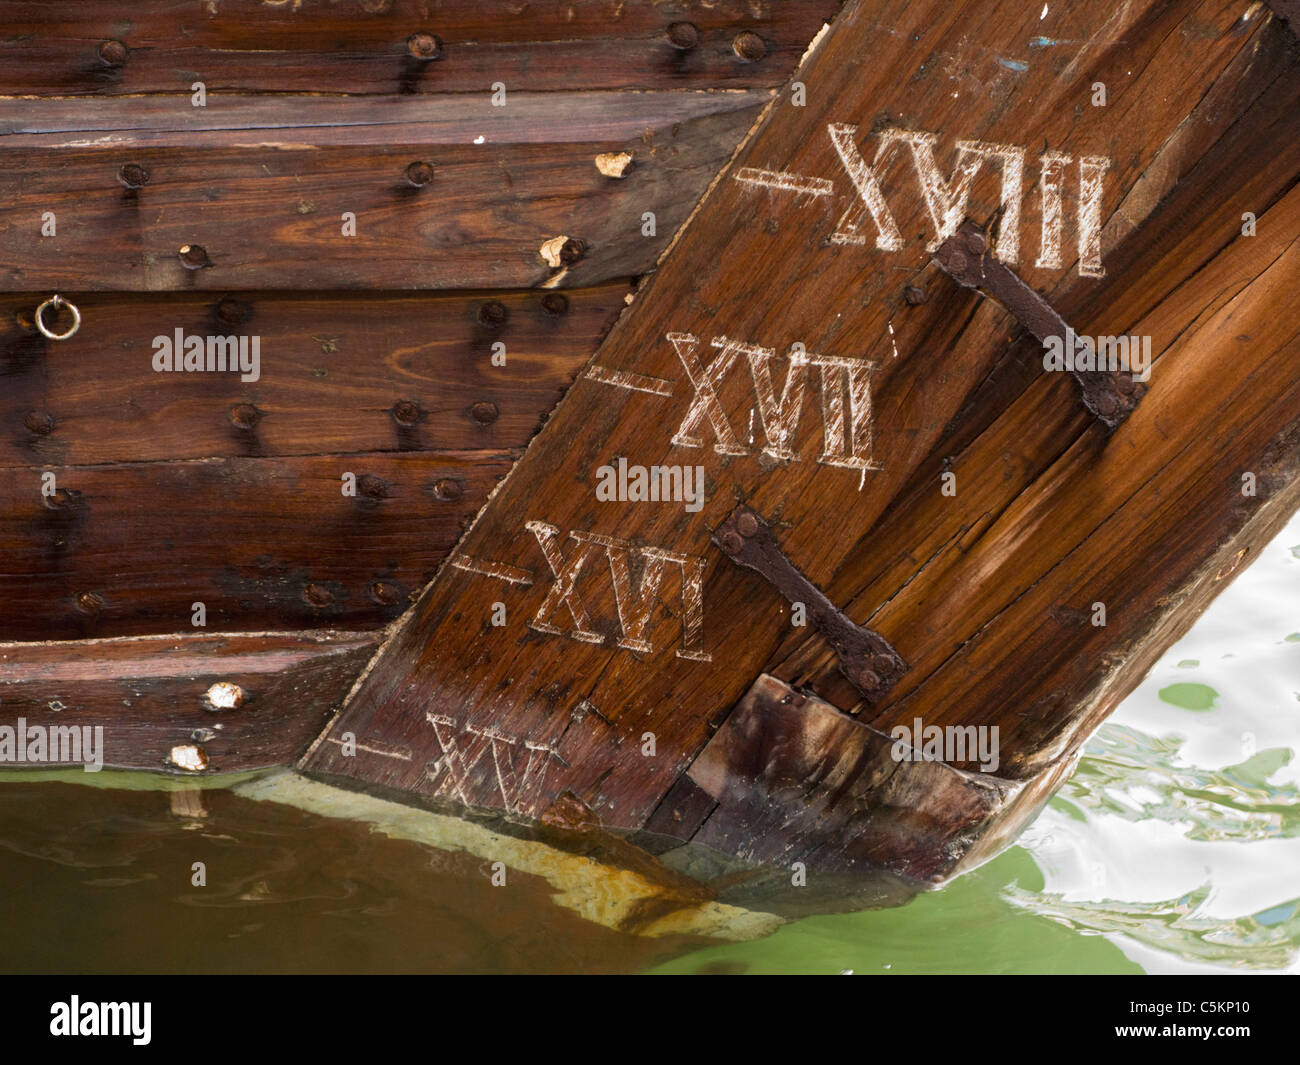 Draft marks in Roman numerals on rudder of an old wooden barge at a wharf on The Creek, Dubai, United Arab Emirates - Stock Image